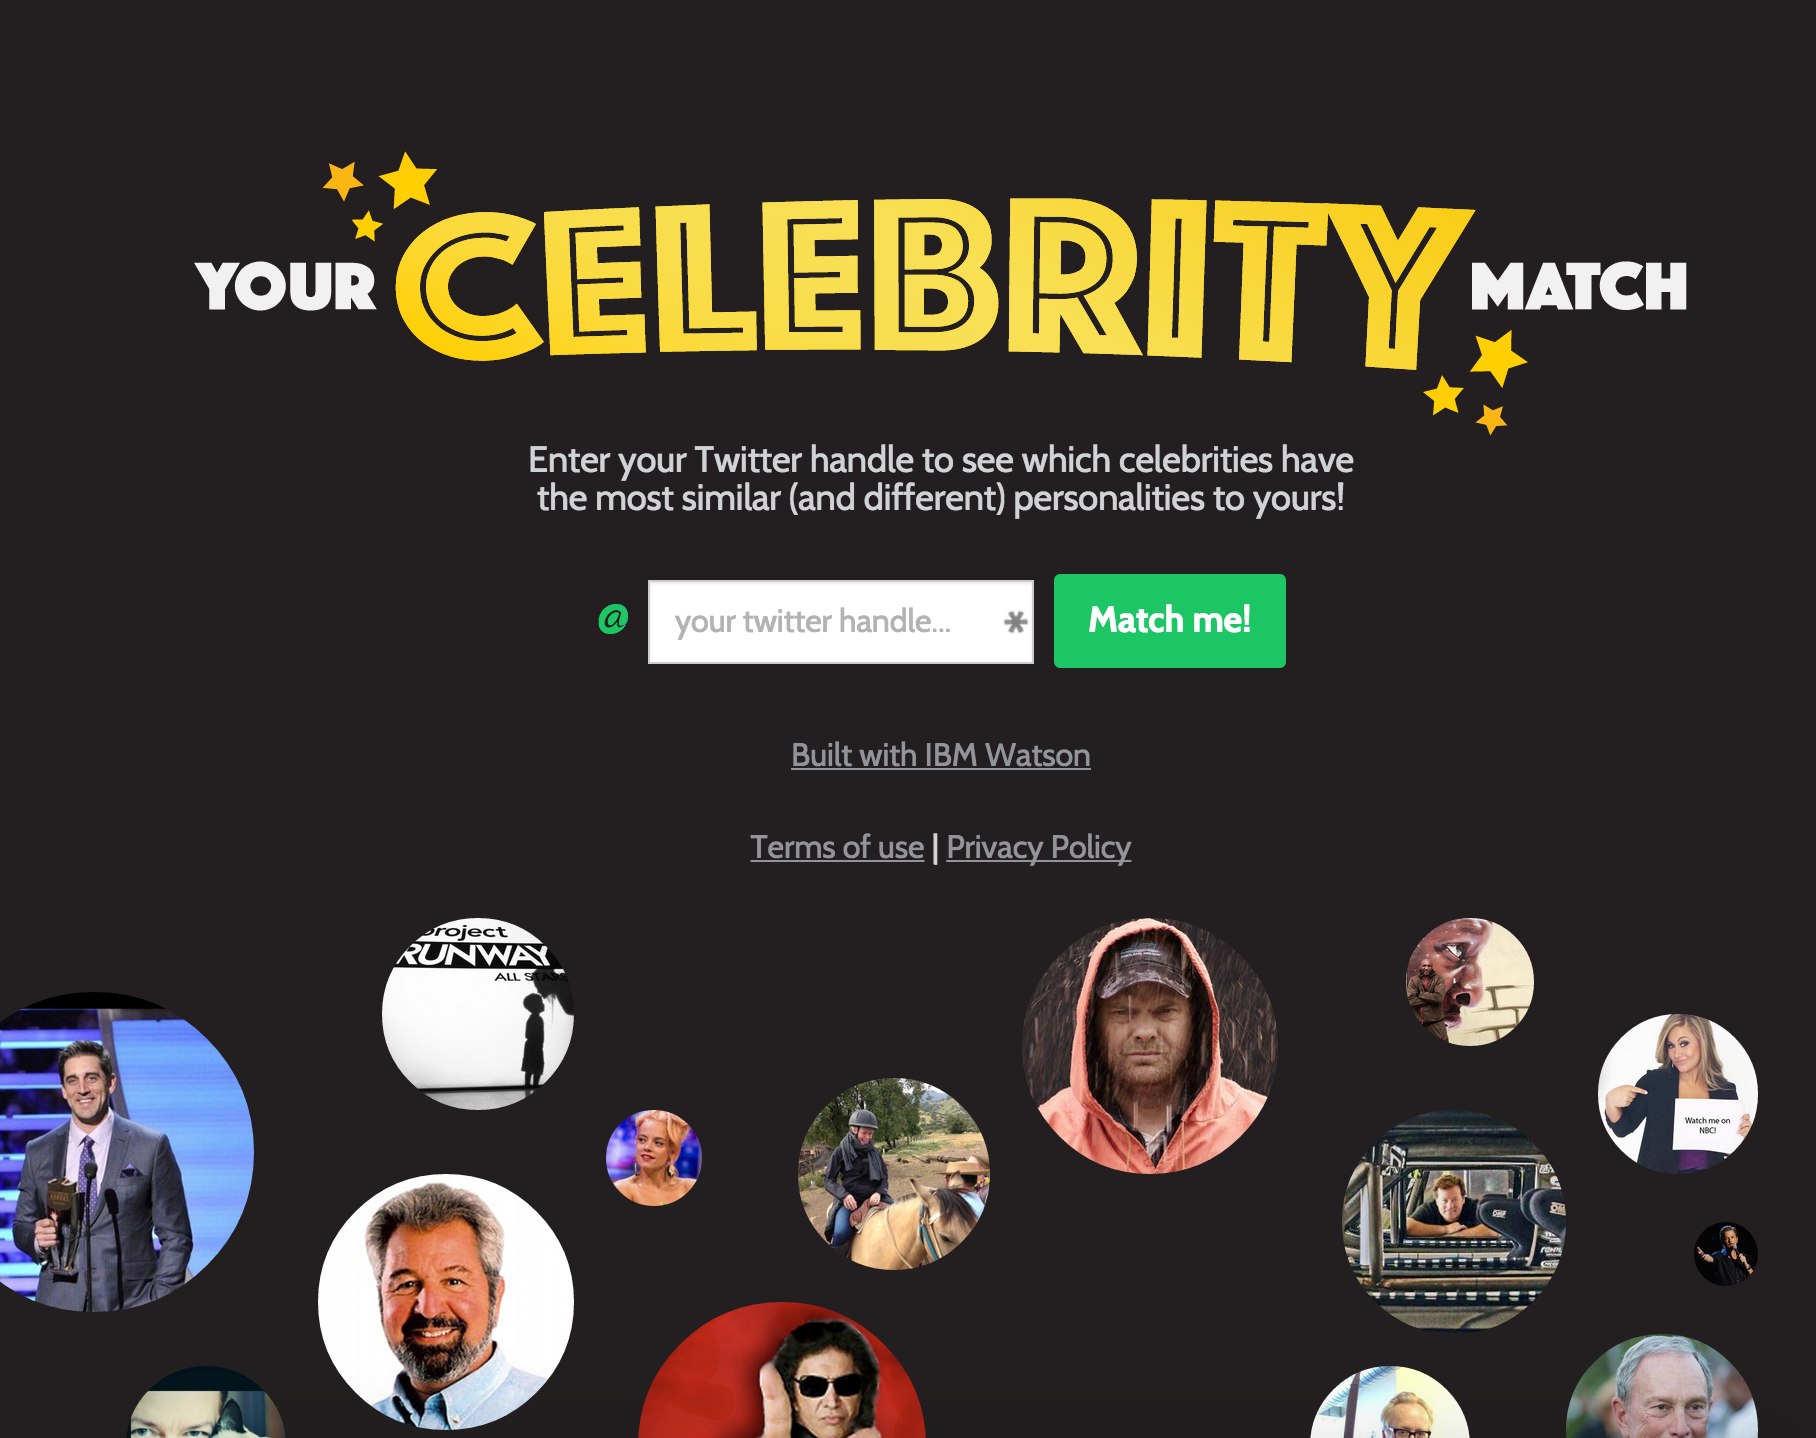 Your who celebrity match is Who's Your